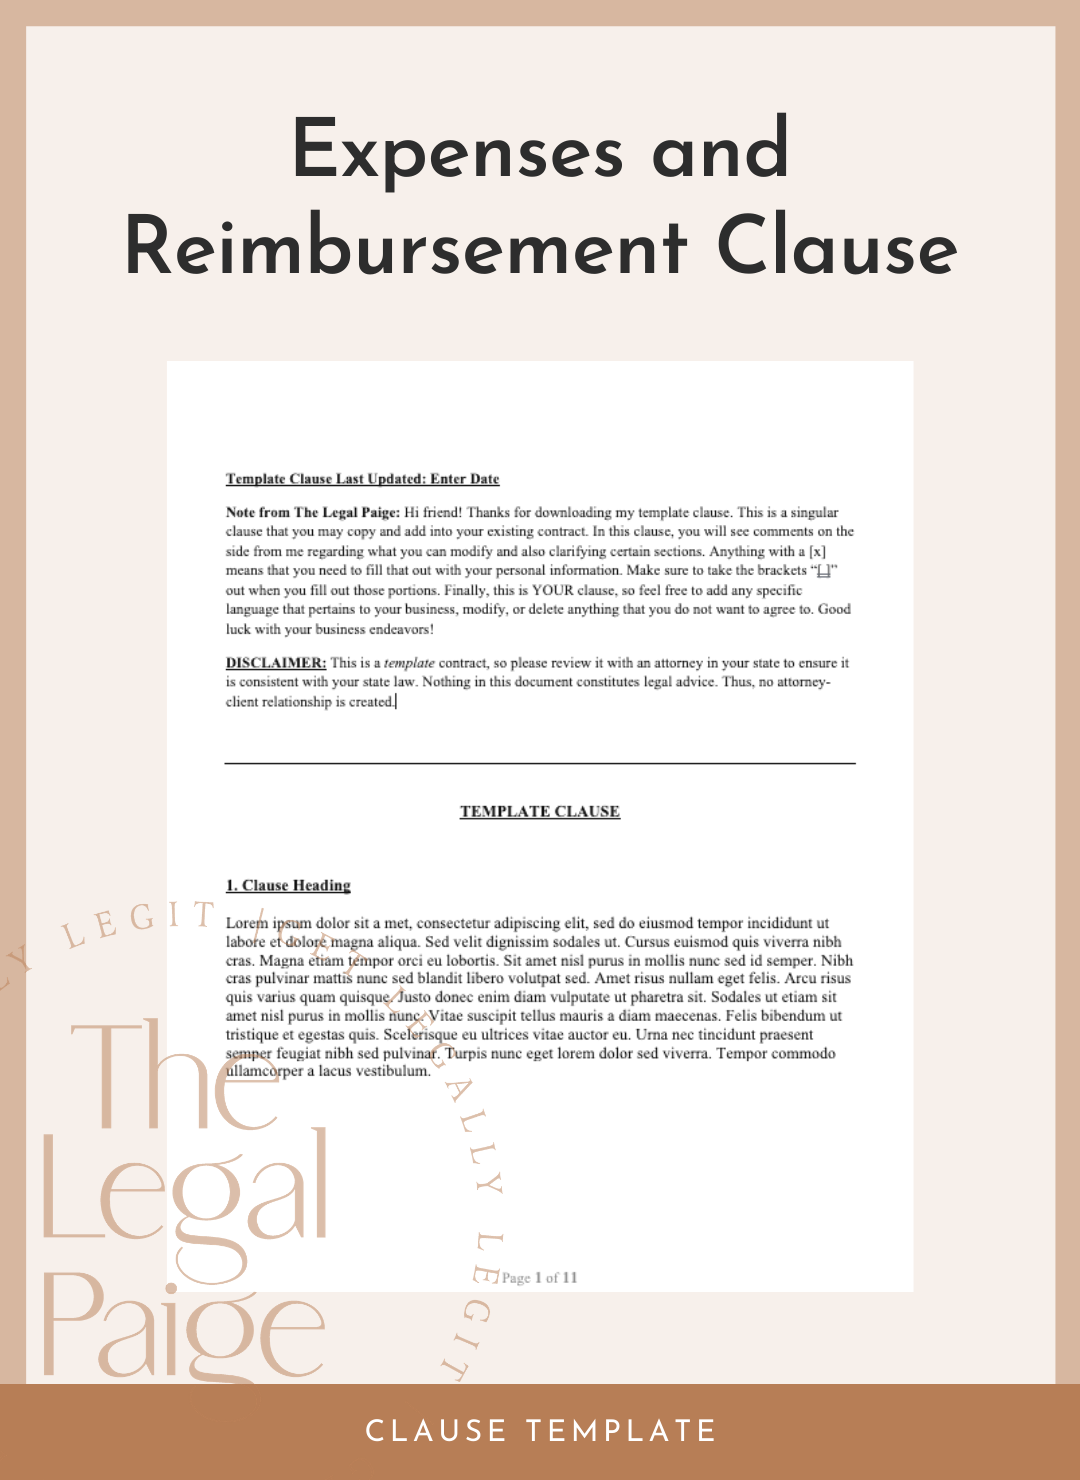 Expenses and Reimbursement Clause